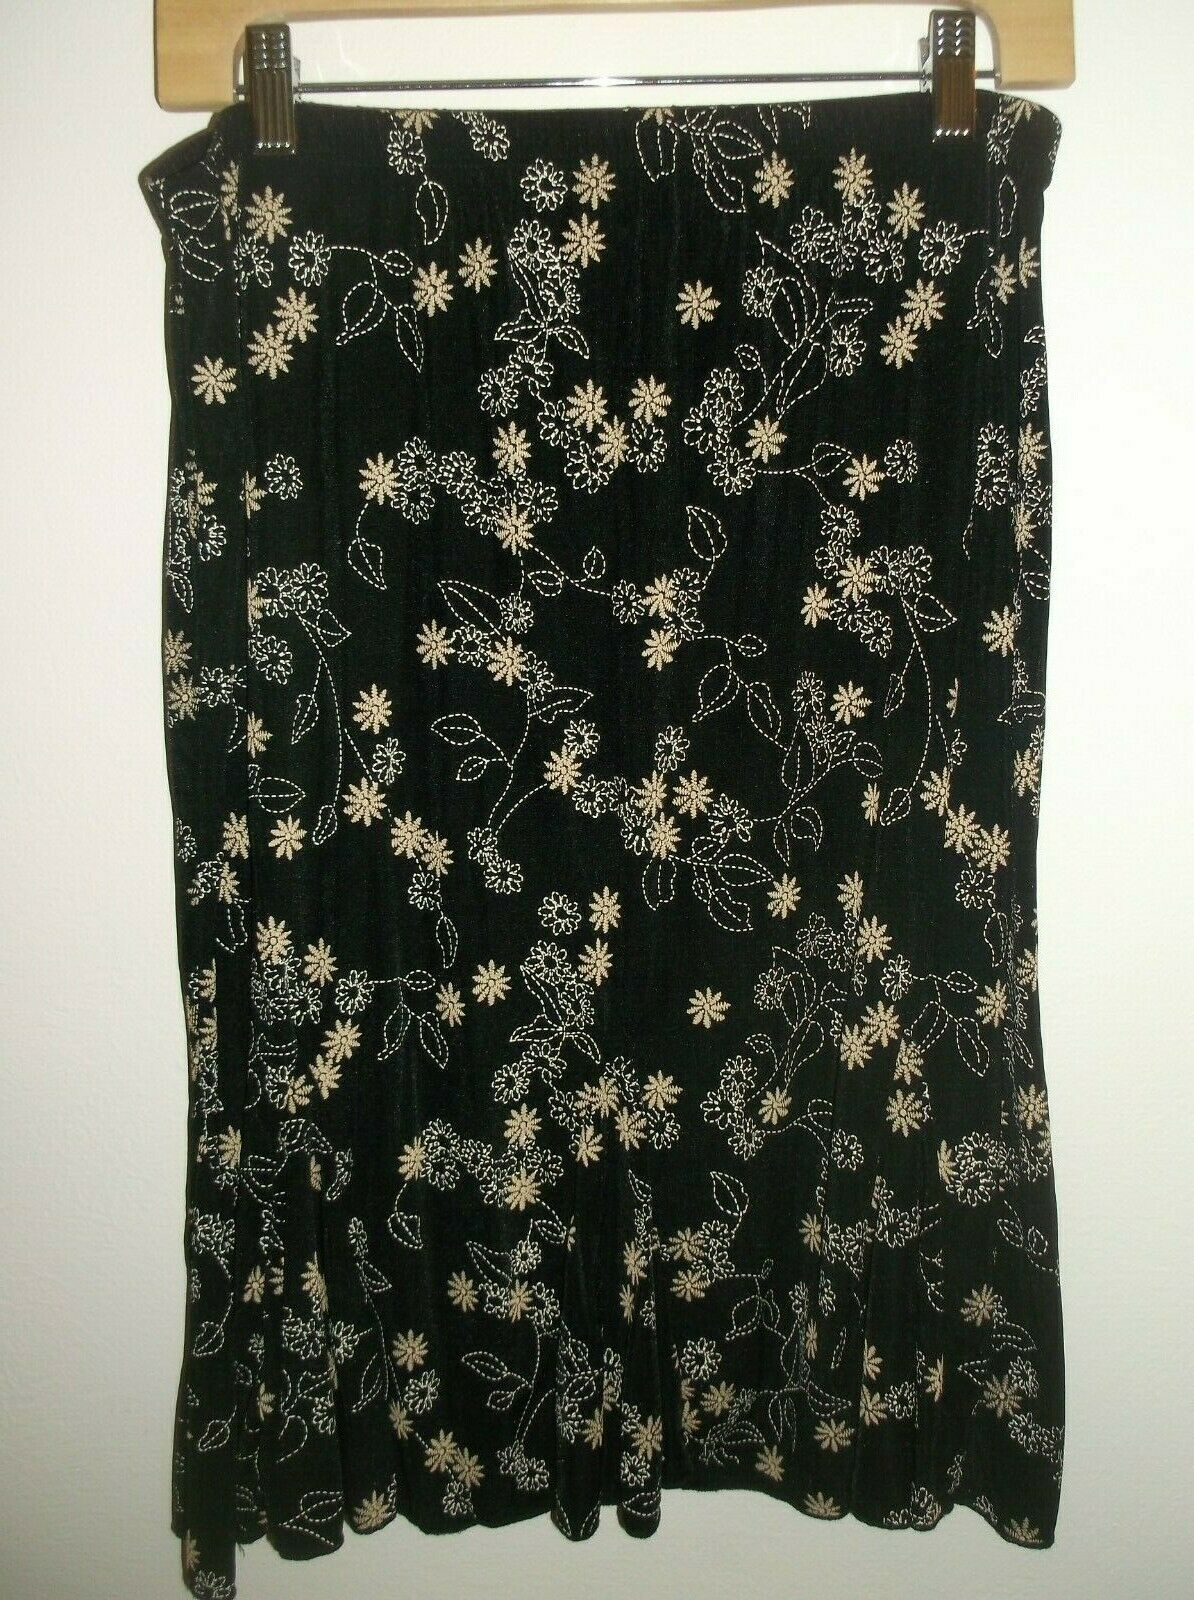 Dressbarn PXL Elastic Waist Skirt Black Background White & Tan Floral Pattern